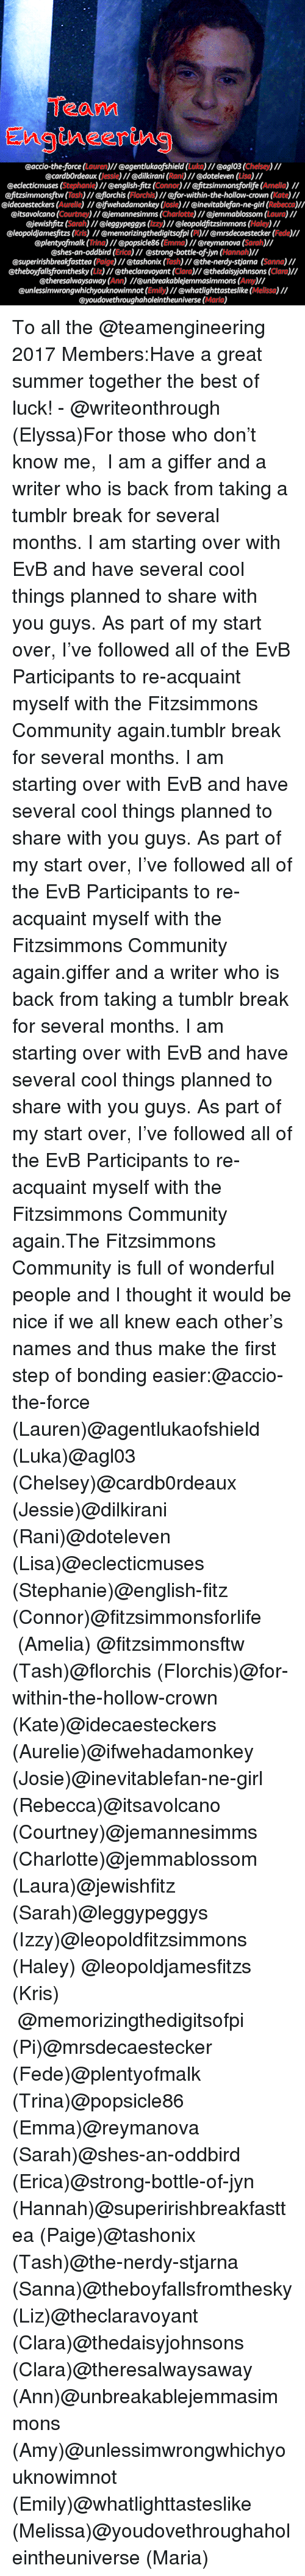 Af, Community, and Tumblr: Teann  eaccio-the-force (Louren)l/ @agentlukaofshield(a)1/ eaglo3 (Chese)1  @cardbOrdeaux (lessle)// @dilkirani (Rani) 1/ @doteleven (Lisa)/  @eclecticmuses (Stephonle)// @english-fitz (Connor)// @fitzsimmonsforlife (Amello) I1  @fitzsimmonsftw(Tash)// @florchis (Florchis)// @for-within-the-hollow-crown (Kate) 1/  @idecaesteckers (Aurelle) 1/ @ifwehadamonkey (josle)1/ @inevitablefan-ne-girl (Rebecoo)  @itsavolcano (Courtney)/@jemannesimms (Charlotte) 1/ @jemmablossom (Louro) //  @jewishfitz (Sarah)// @leggypeggys (zzy)I/@leopoldjfitzsimmons (Haley)/  @leopoldjamesfitzs (ris) I/ @memorizingthedigitsofpi (P)I @mrsdecaestecker (Fede)ll  @plentyofmalk (Trina)// @popsicle86 (Emma) I/ @reymanova (Sarah)ll  @shes-an-oddbird (Erlca)// @strong-bottle-of-jyn (Hannahl  @superirishbreakfasttea (Paige)// @tashonix (Tosh)// @the-nerdy-stjarna (Sanna)l  @theboyfallsfromthesky (a)//@theclaravoyant (Clara)l/@thedaisyjohnsons (Claro)  @theresalwaysaway (Ann) I/@unbreakablejemmasimmons (Amy)  @unlessimwrongwhichyouknowimnot (Emily) // @whatlighttasteslike (Melilssa) /  @youdovethroughaholeintheuniverse (Marla) To all the@teamengineering 2017 Members:Have a great summer together  the best of luck!-@writeonthrough (Elyssa)For those who don't know me, I am a giffer and a writer who is back from taking a tumblr break for several months. I am starting over with EvB and have several cool things planned to share with you guys. As part of my start over, I've followed all of the EvB Participants to re-acquaint myself with the Fitzsimmons Community again.tumblr break for several months. I am starting over with EvB and have several cool things planned to share with you guys. As part of my start over, I've followed all of the EvB Participants to re-acquaint myself with the Fitzsimmons Community again.giffer and a writer who is back from taking a tumblr break for several months. I am starting over with EvB and have several cool things planned to share with you guys. As p